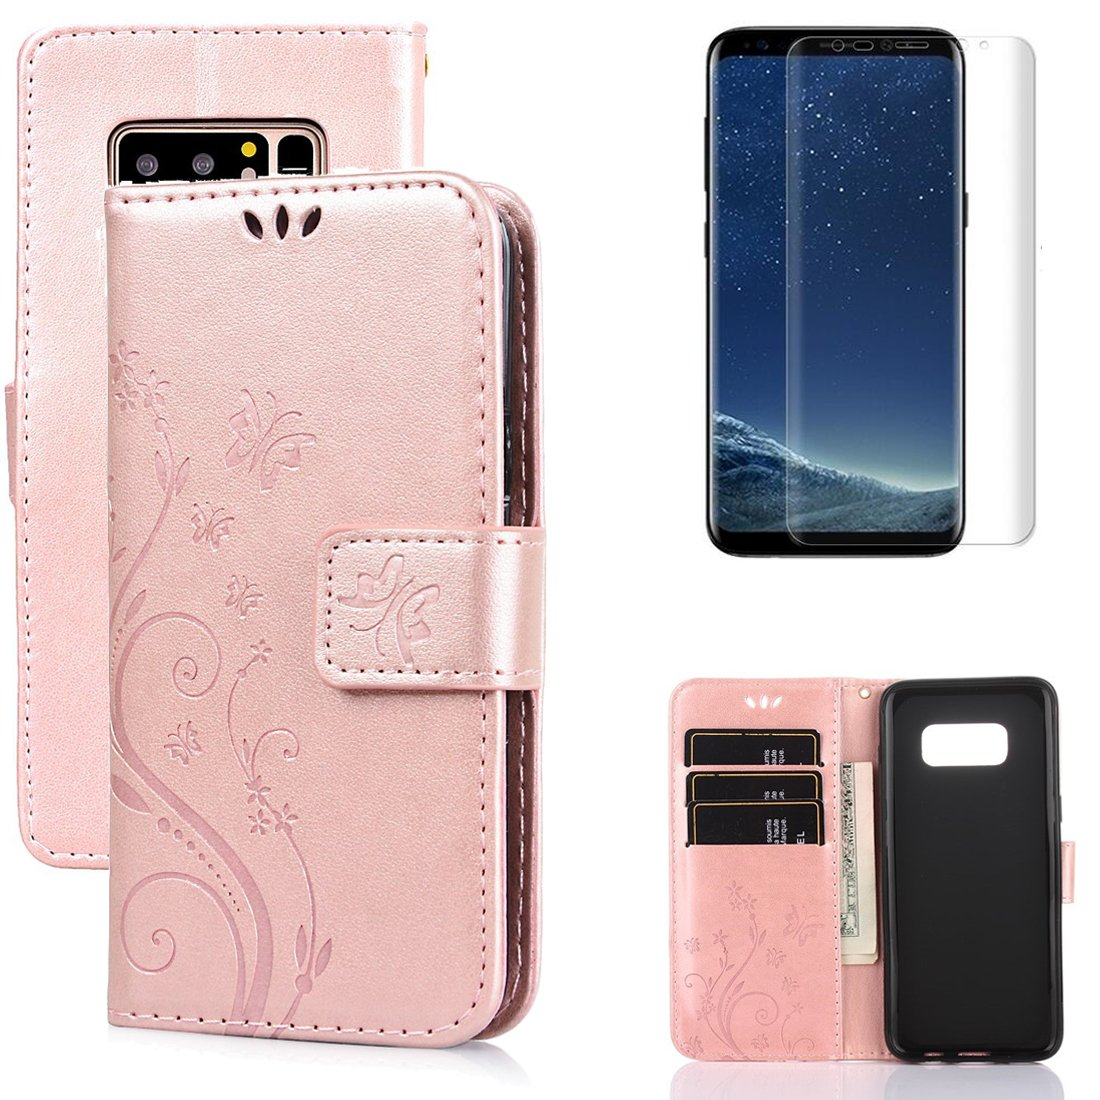 for Samsung Galaxy S8 Plus Wallet Case and Screen Protector,OYIME [Butterfly Flower Embossed] Elegant Pattern Design Leather Holster Kickstand Card Slot Function Shockproof Full Body Pretection Bumper Magnetic Flip Cover with Wrist Lanyard - Pure Blue